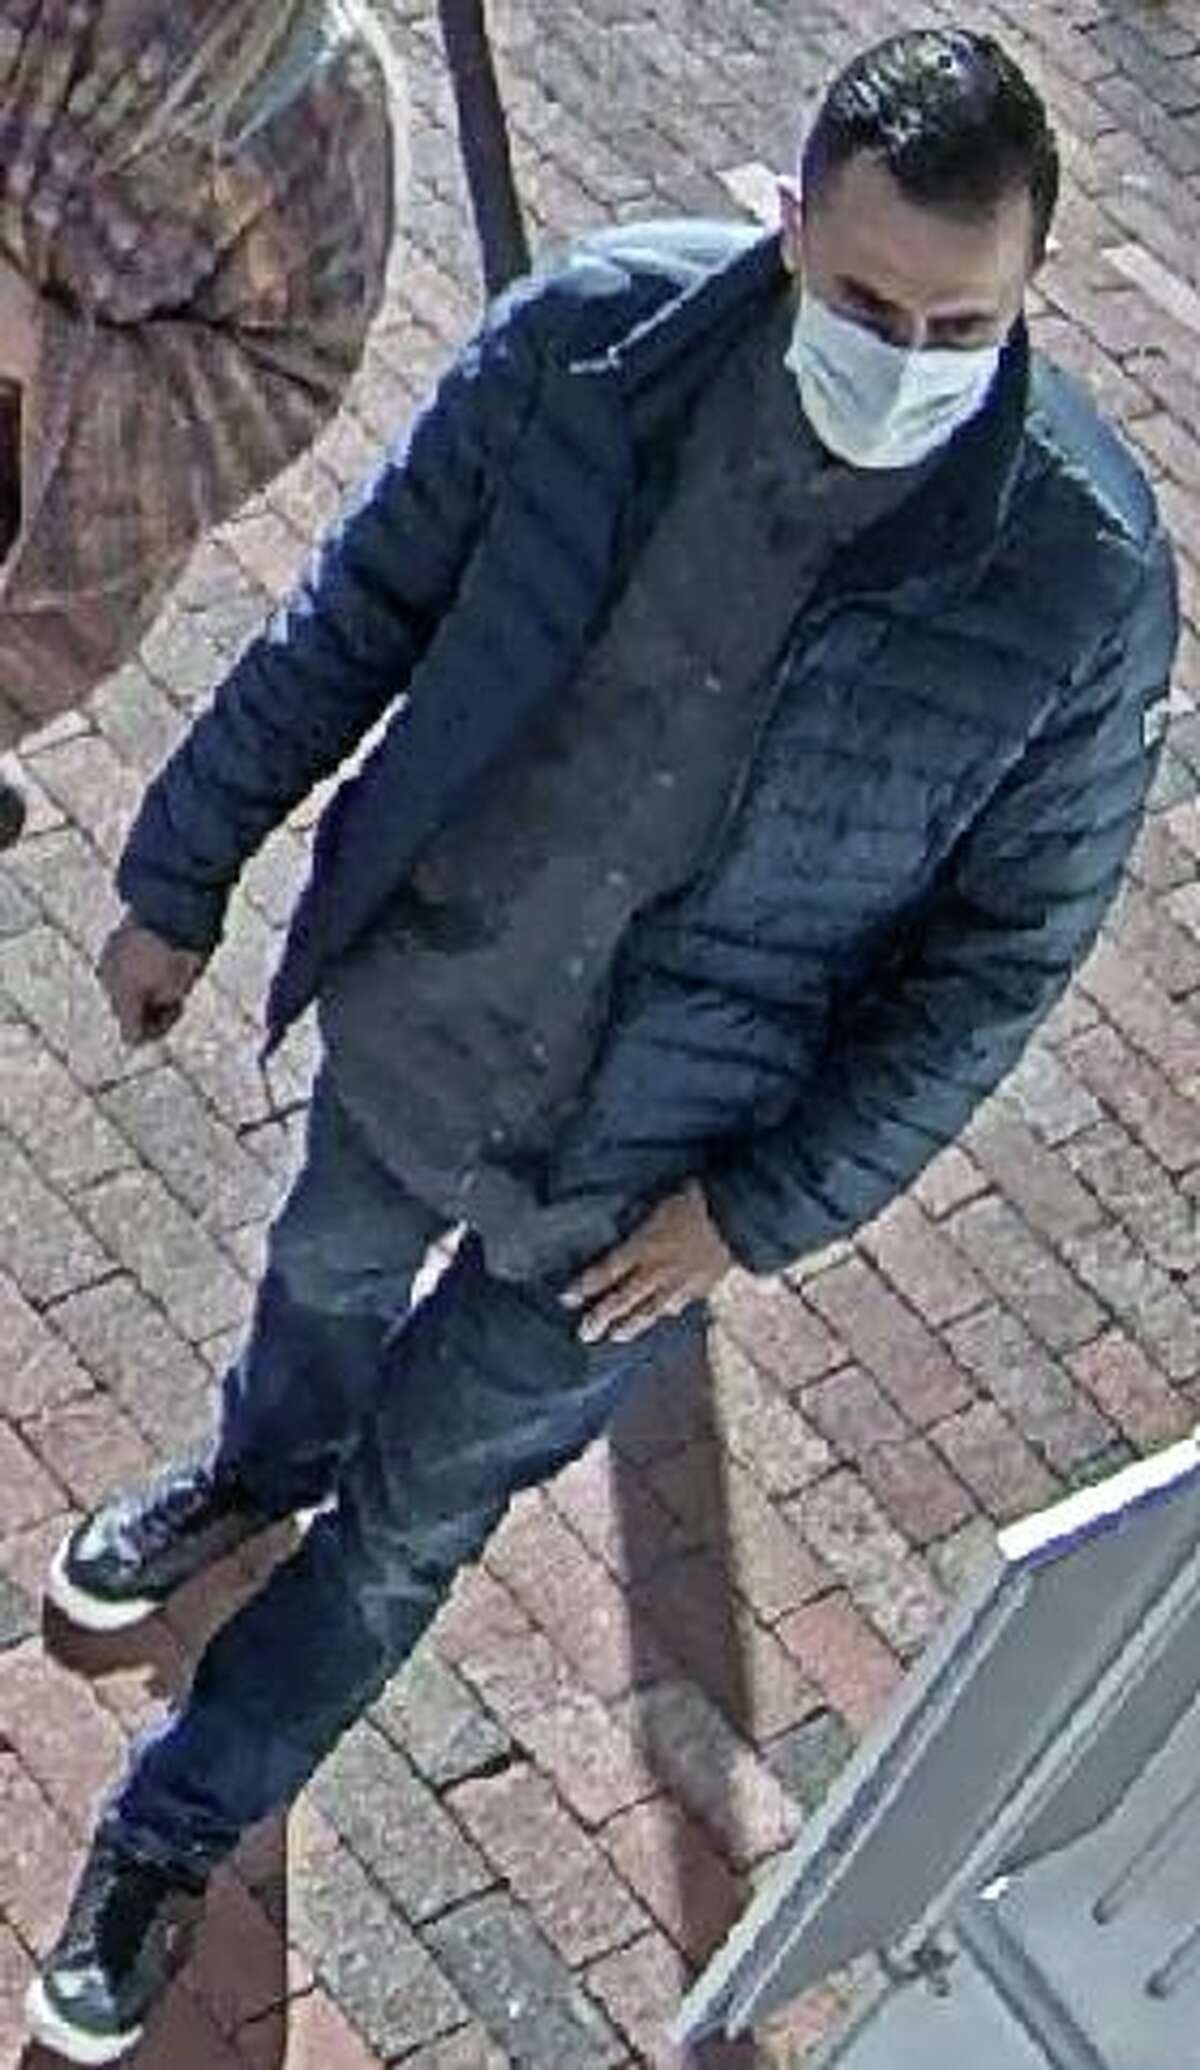 New Canaan police are asking for the public's help in identifying suspects who stole $7,110 in shirts from the Ralph Lauren store on Elm Street. Police said over the past few weeks two retail thefts have been reported the store.